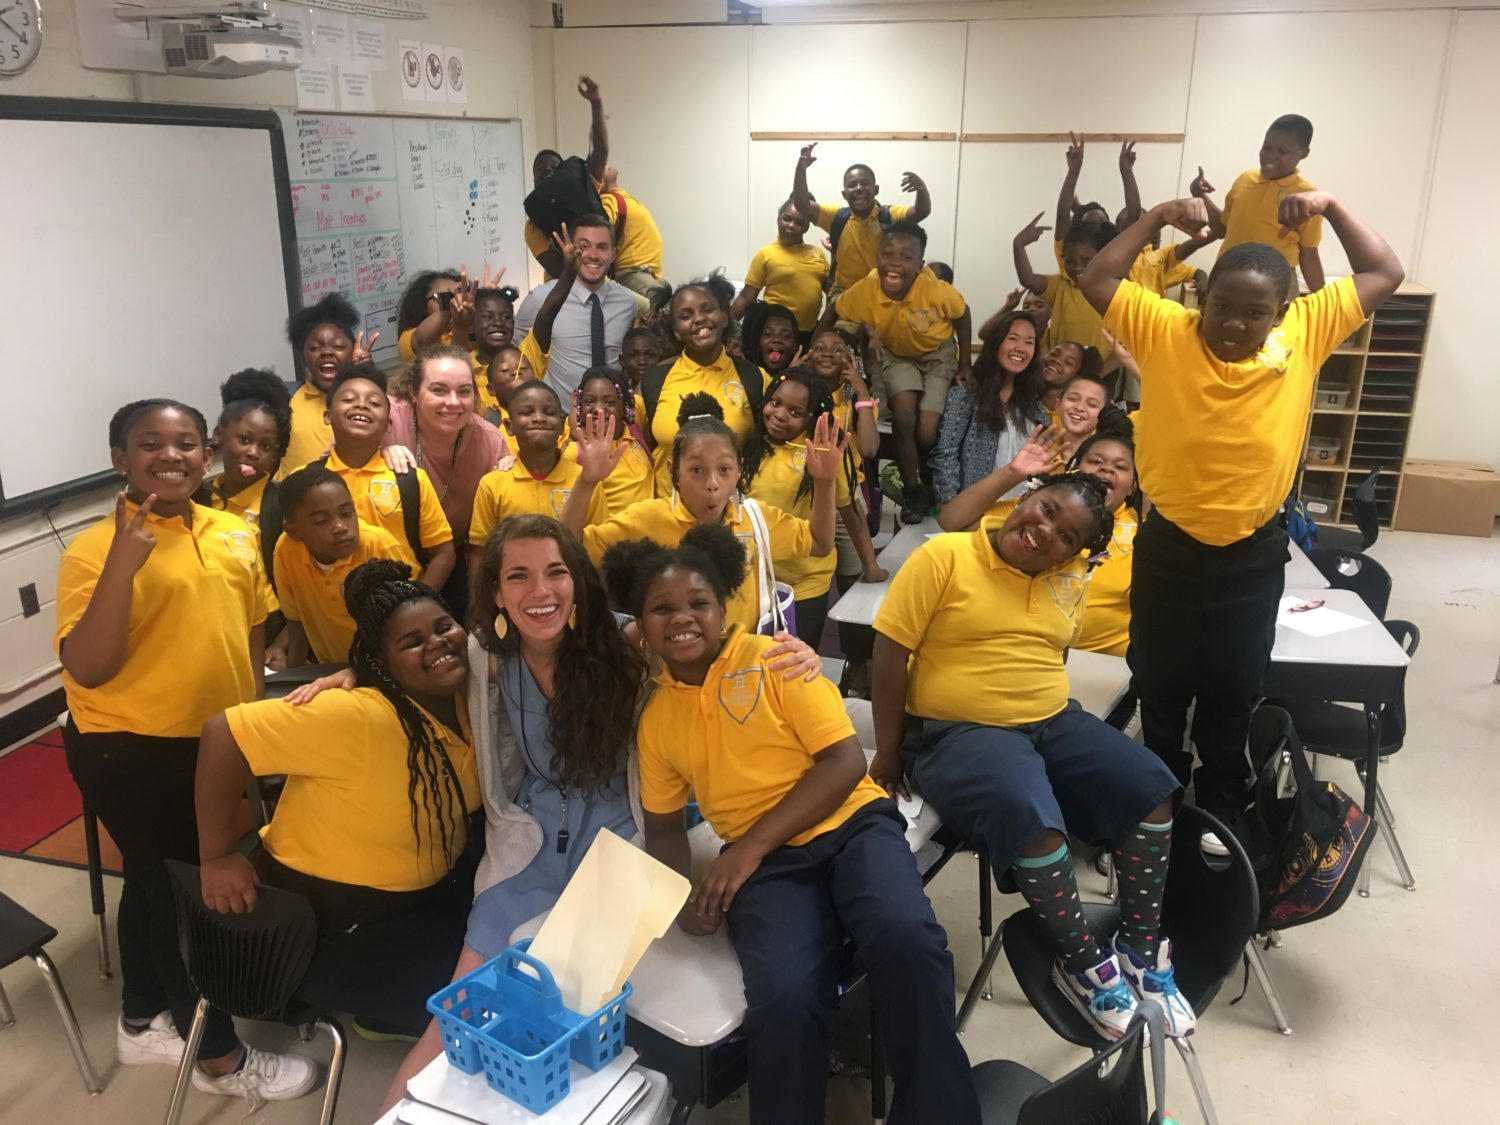 Ginny Terrell poses with her Aspire Hanley third-graders. Terrell has been teaching for four years and will move to Aspire East in the fall.